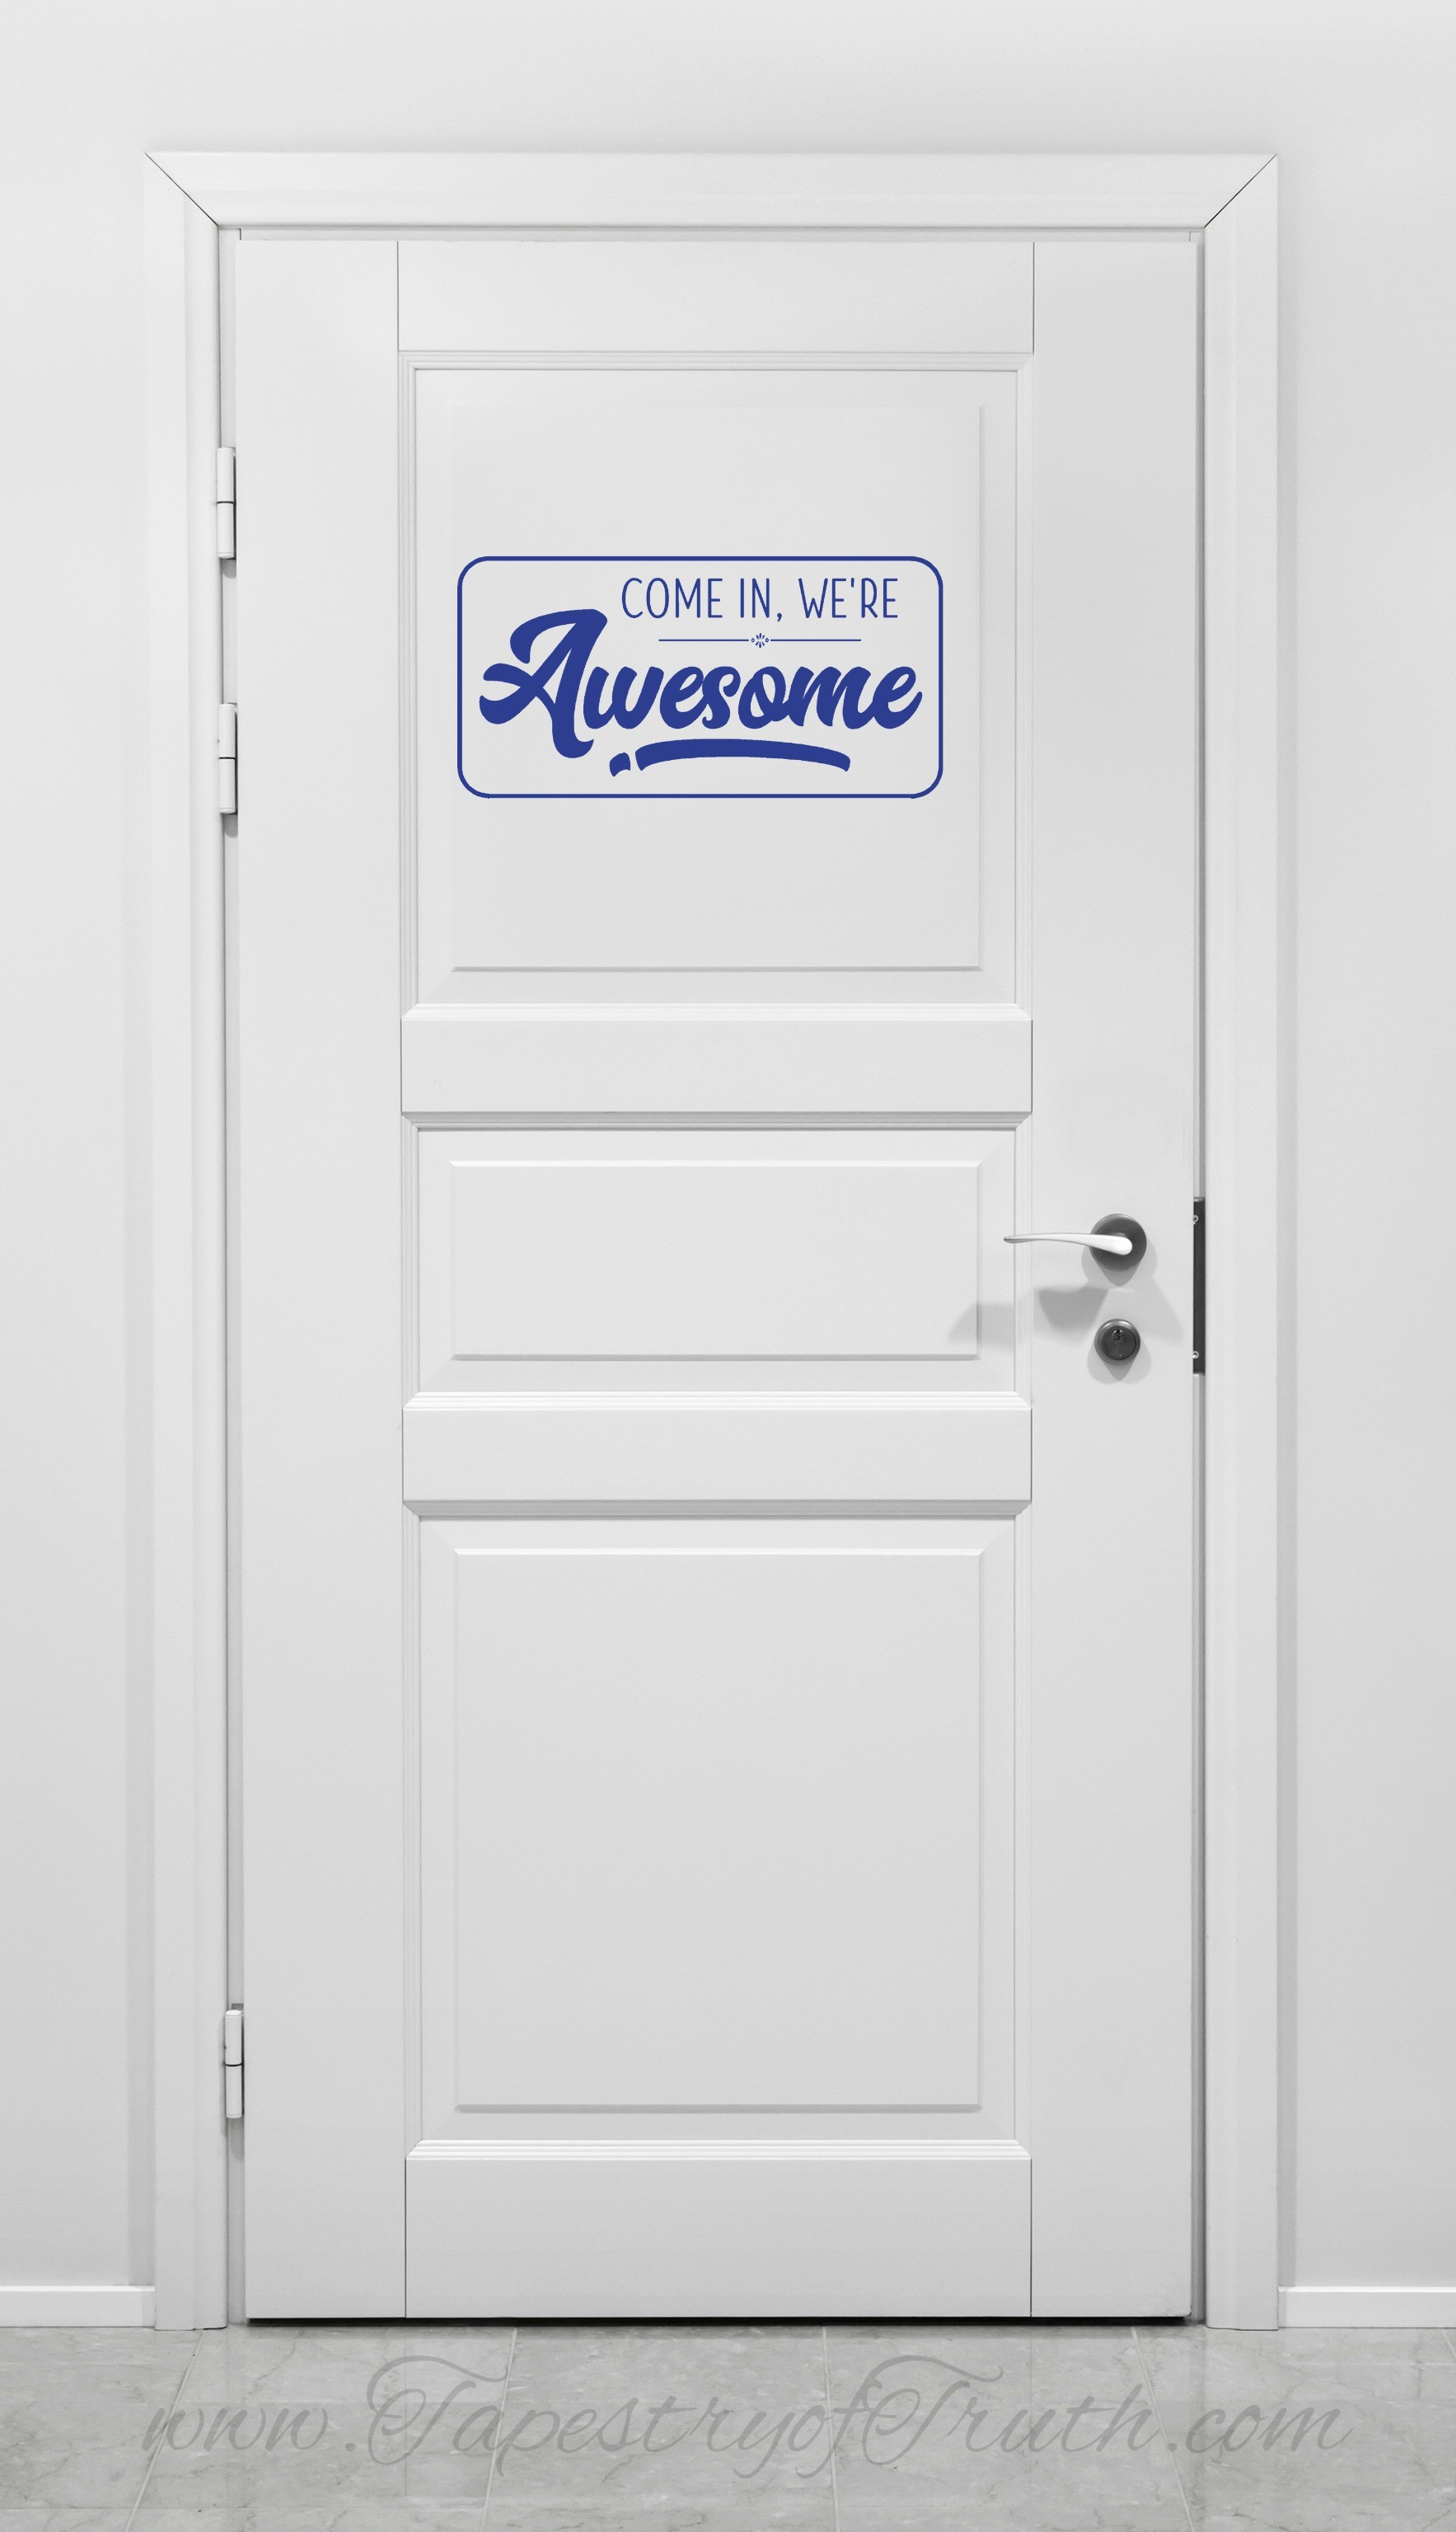 Come in, we're Awesome!